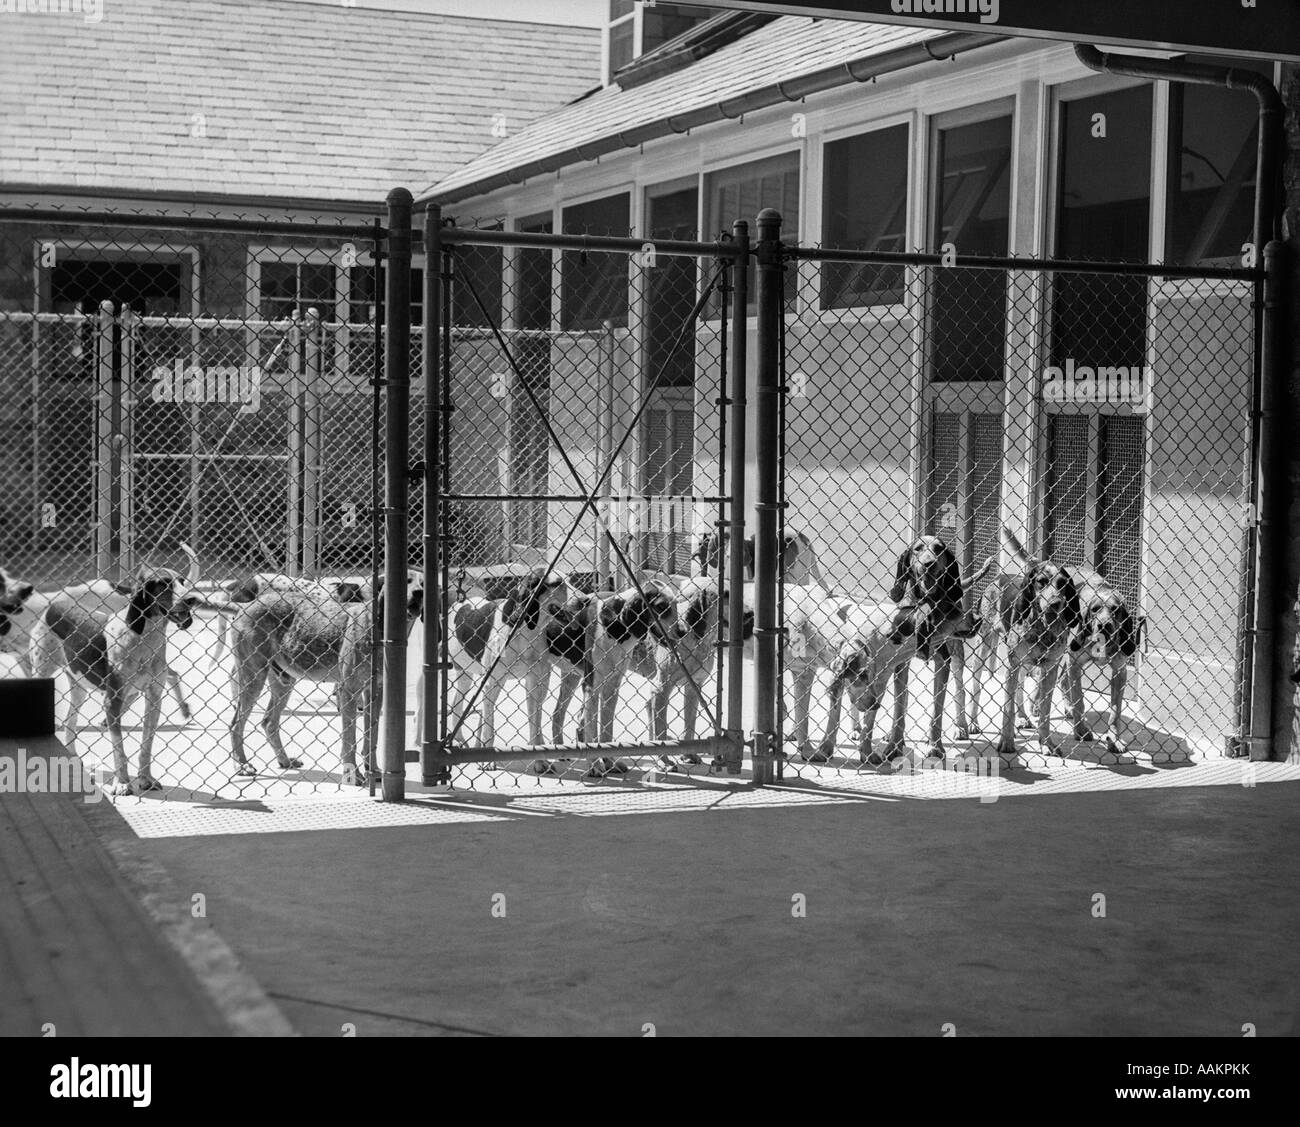 1930s kennel yard full fox hound foxhounds dogs wire fence cage